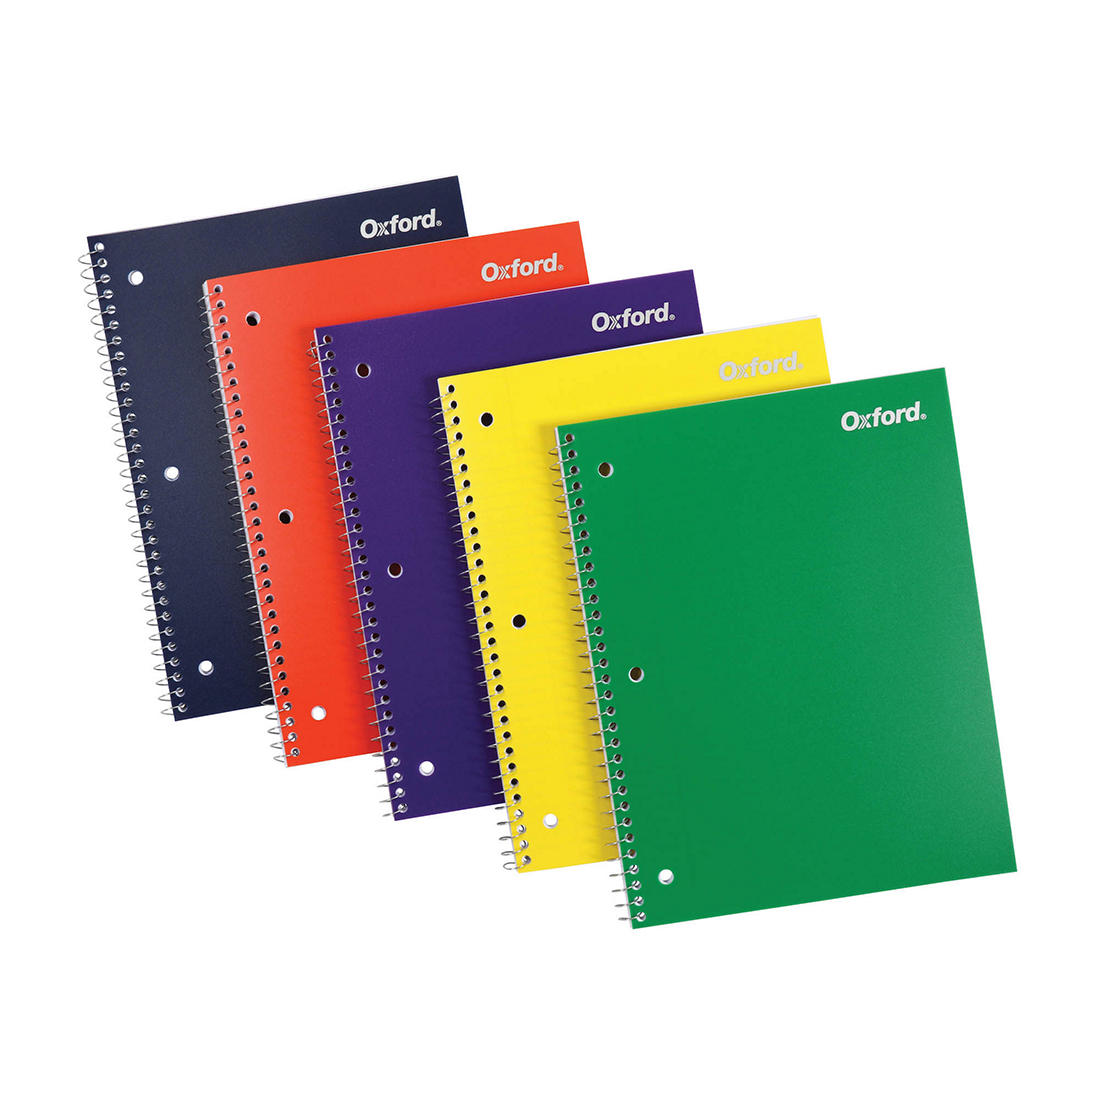 Oxford Spiral Notebooks 100 Sheets Durable Plastic Cover 6 per Pack Divider Pocket 10390 1 Subject College Ruled Paper